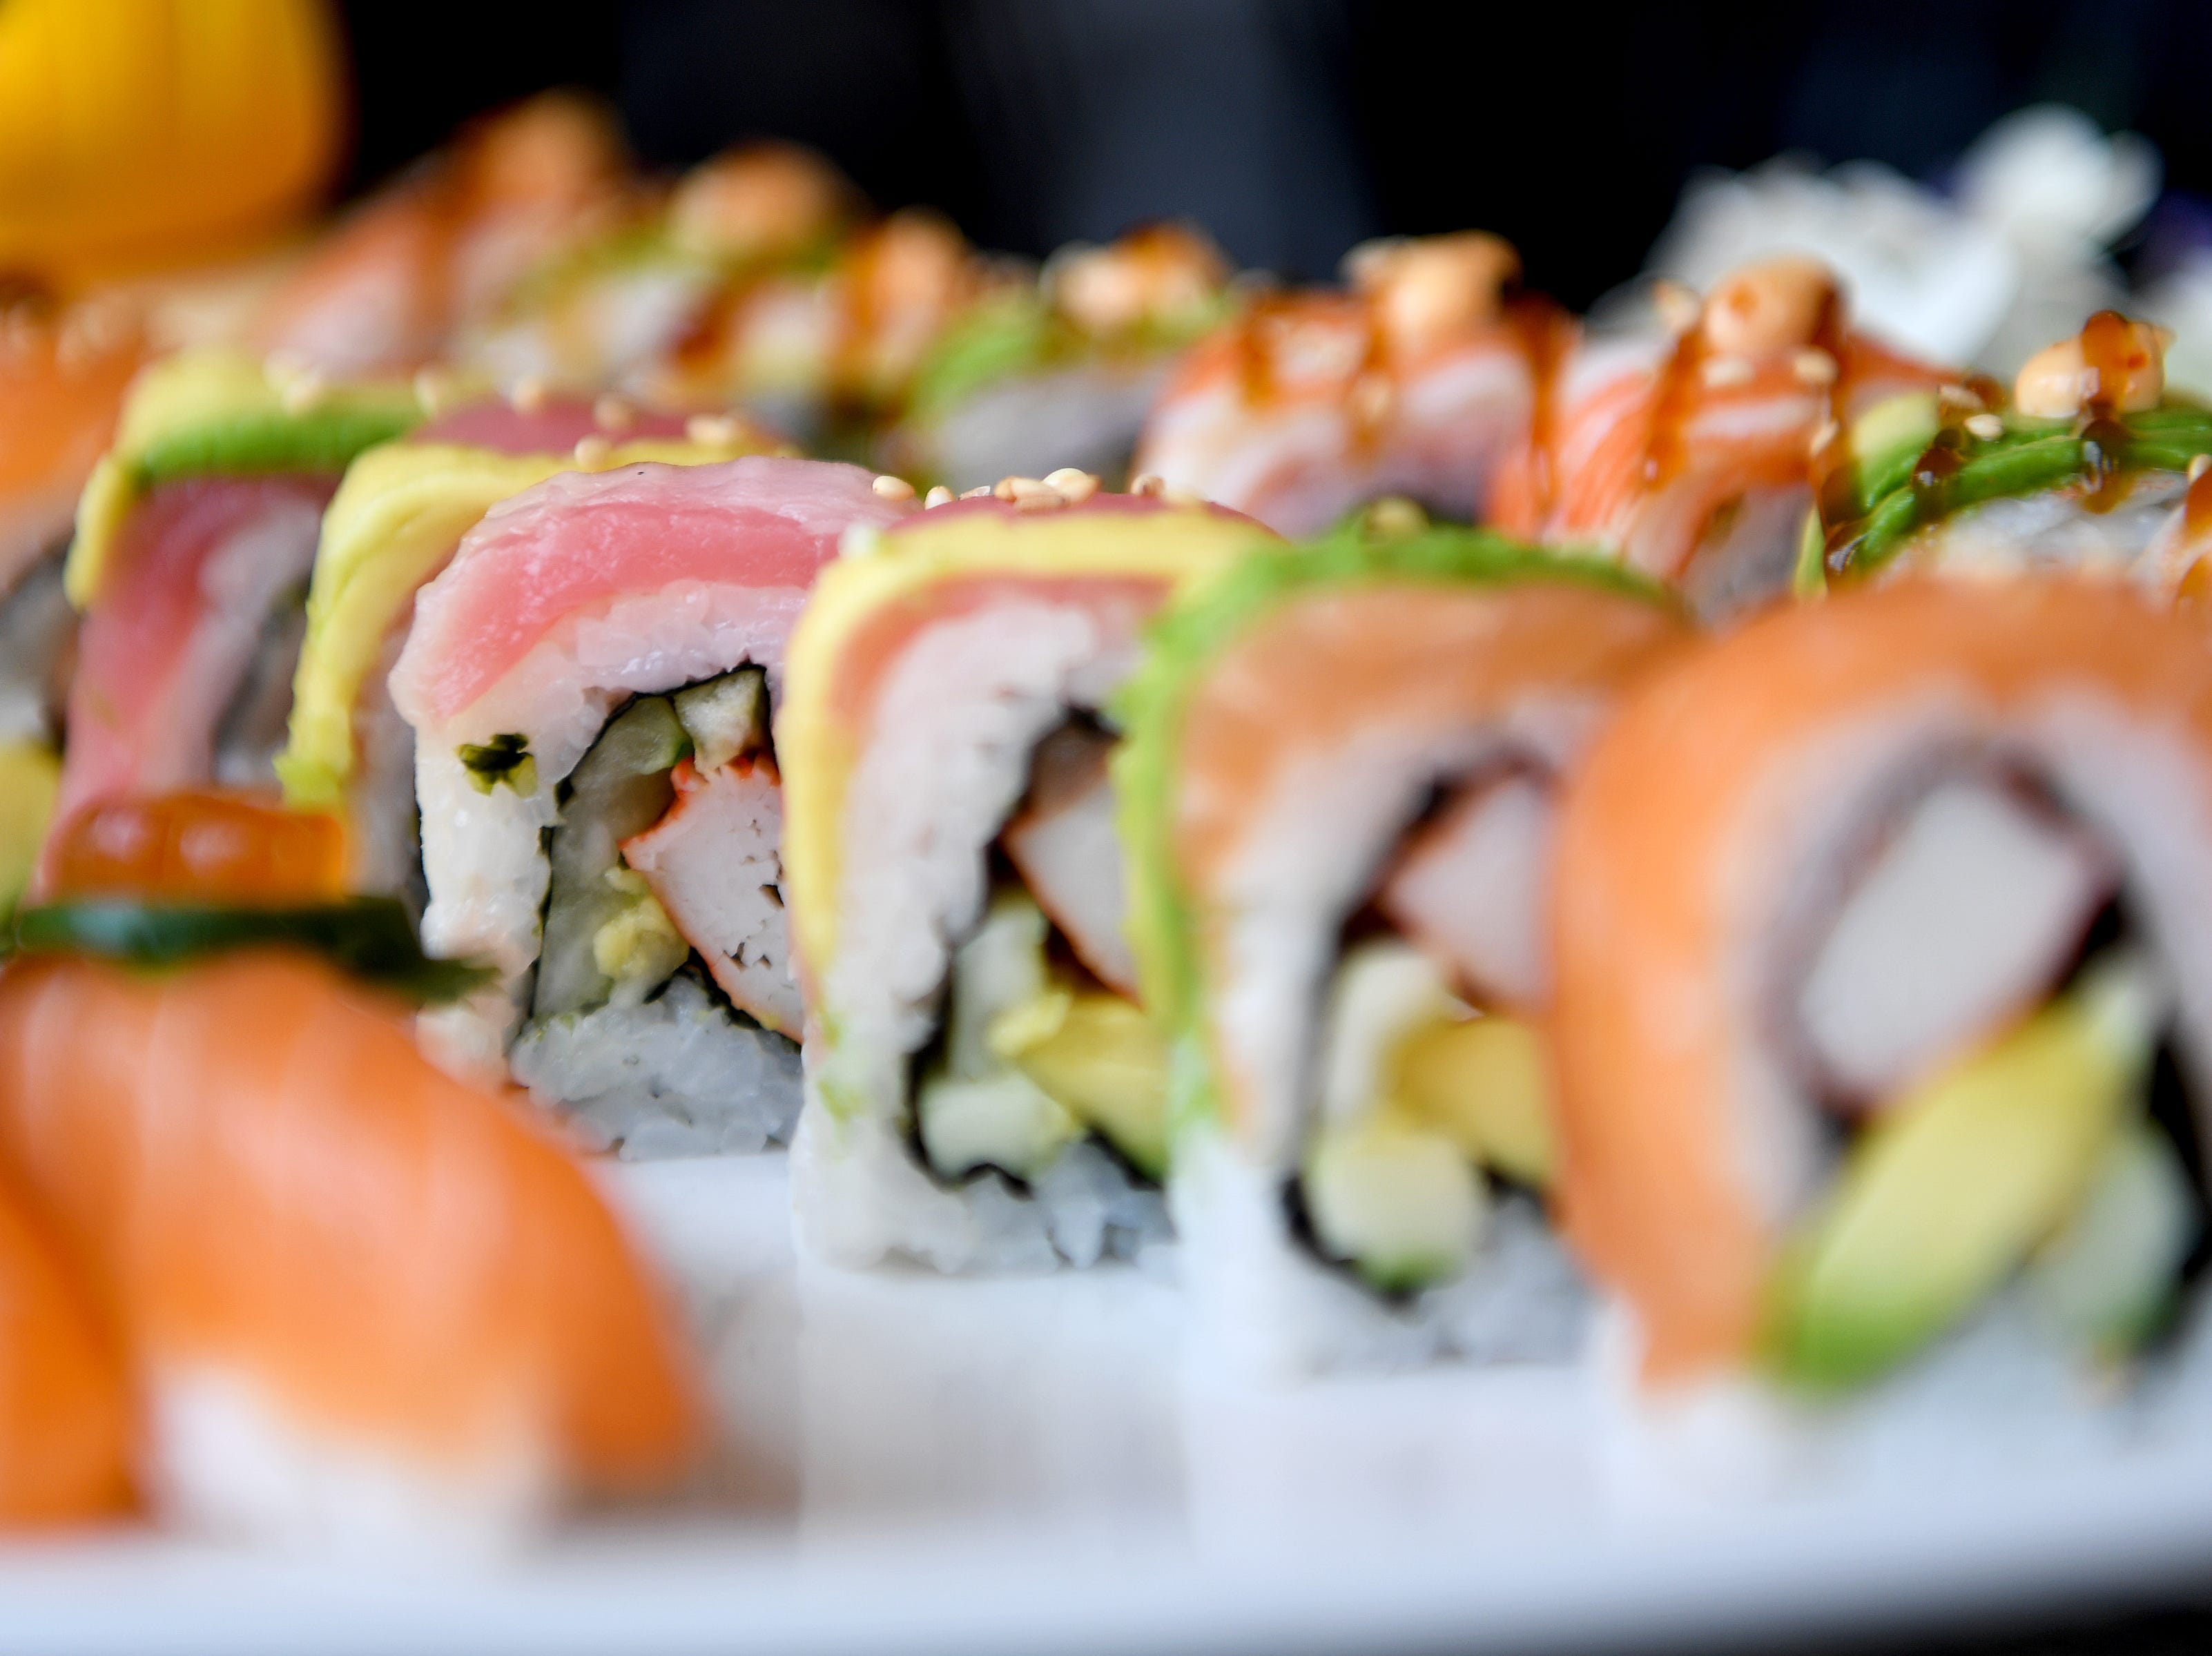 The rainbow roll at Takosushi features crab, and cucumber, topped with avocado, eel, tuna, escolar and salmon.